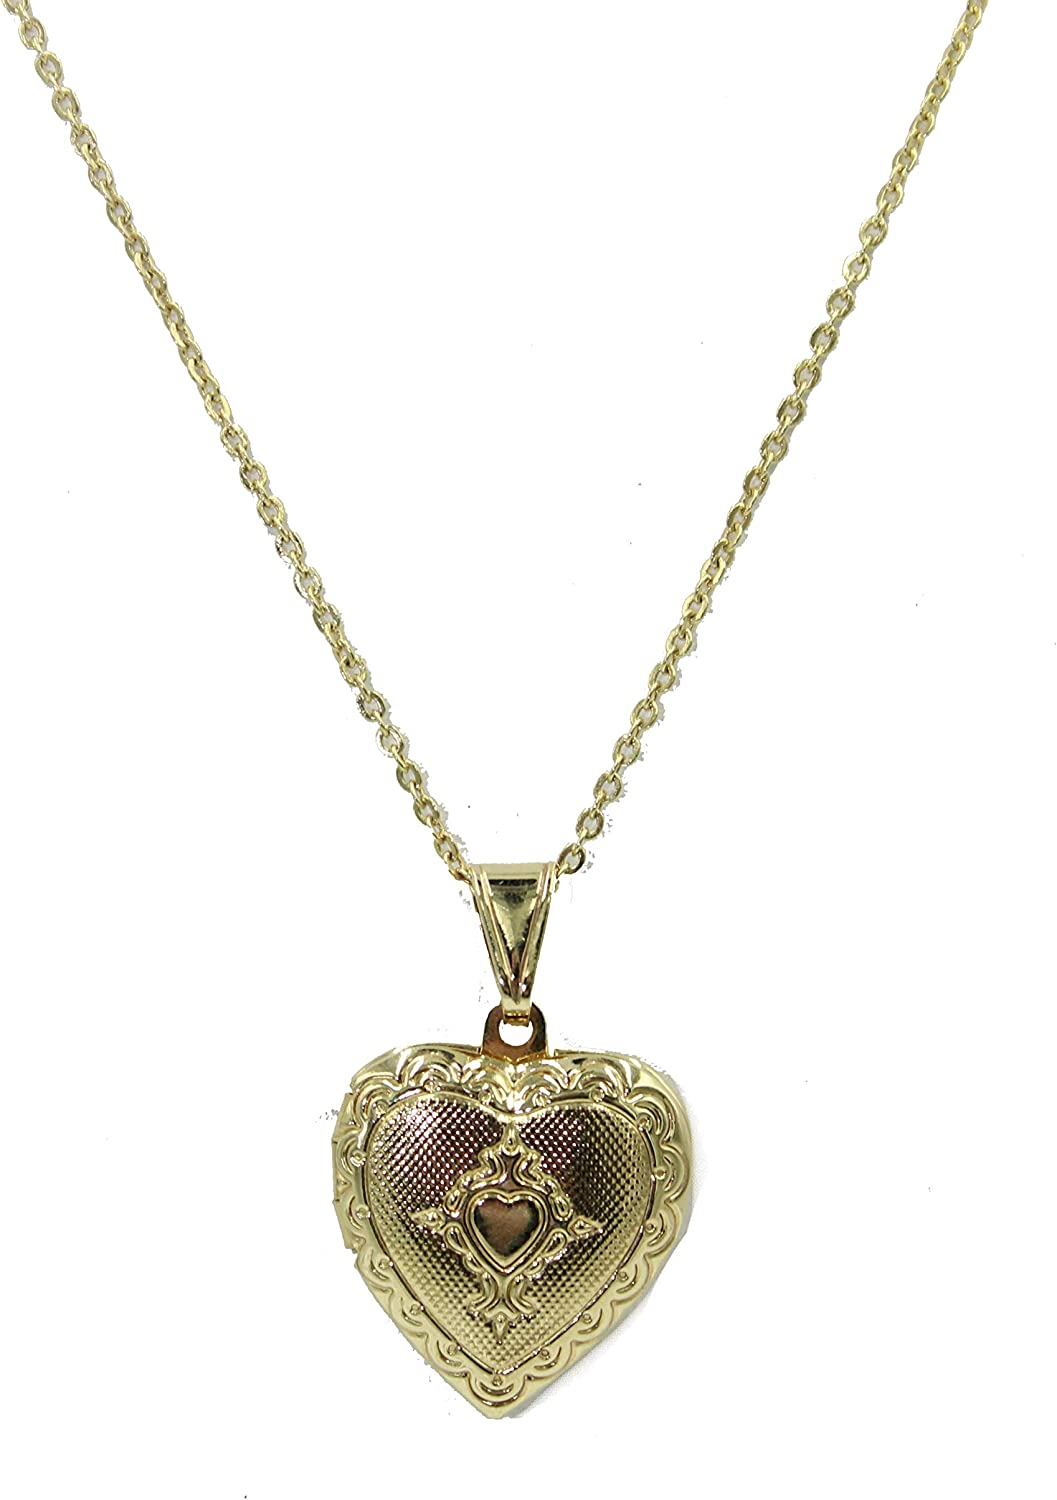 Heart Photo Locket Pendant 18k Gold Plated Pendant with 20 Inch Chain - Photo Locket Necklace